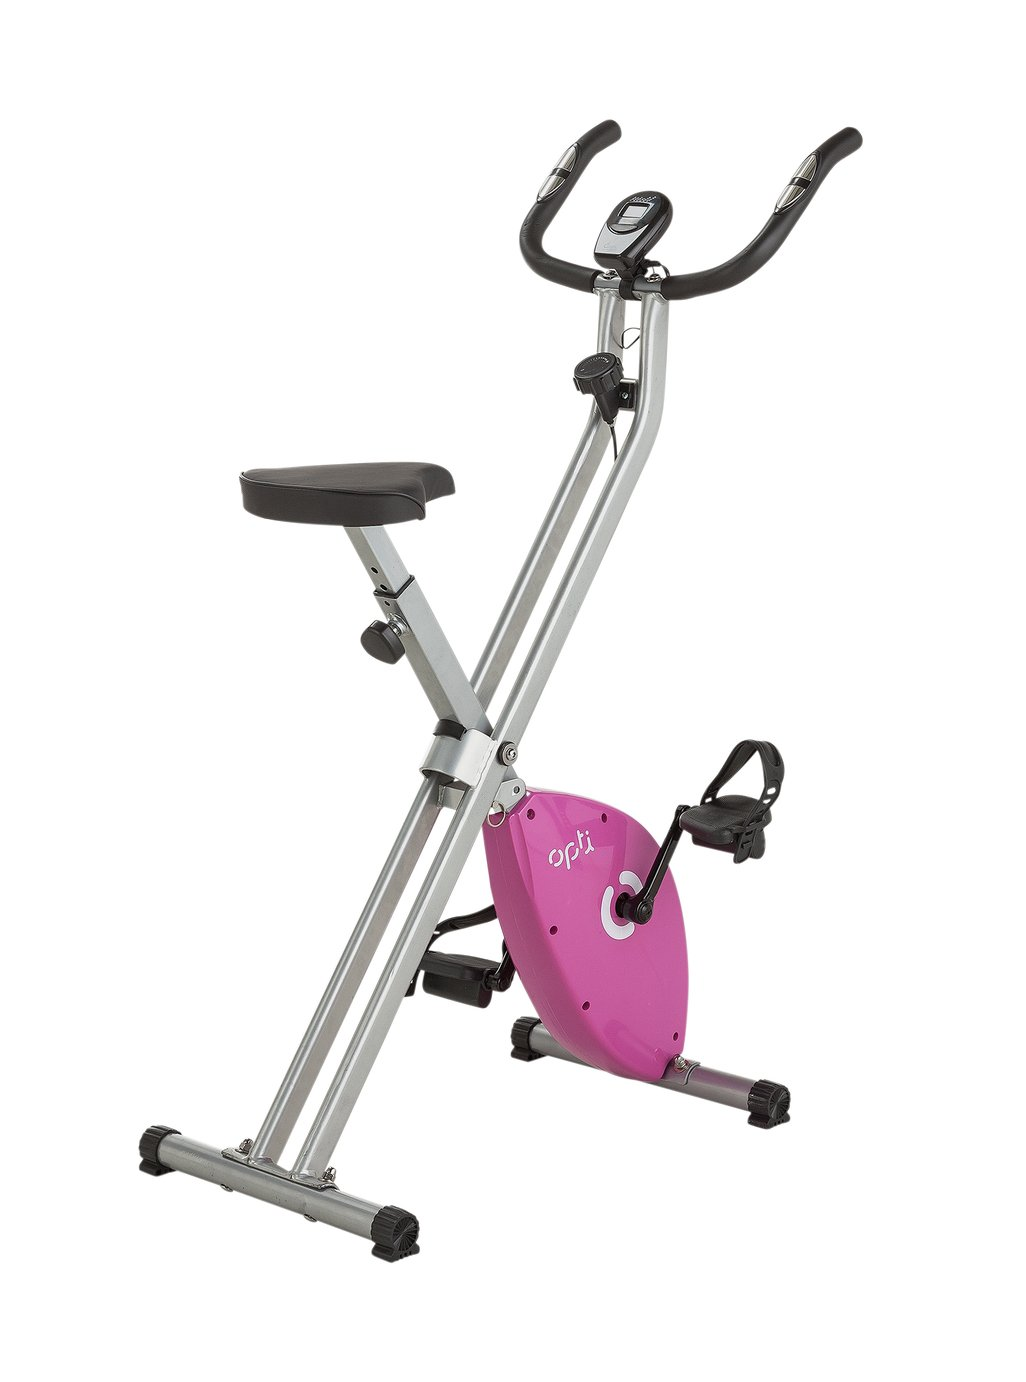 Opti Folding Magnetic Exercise Bike - Pink